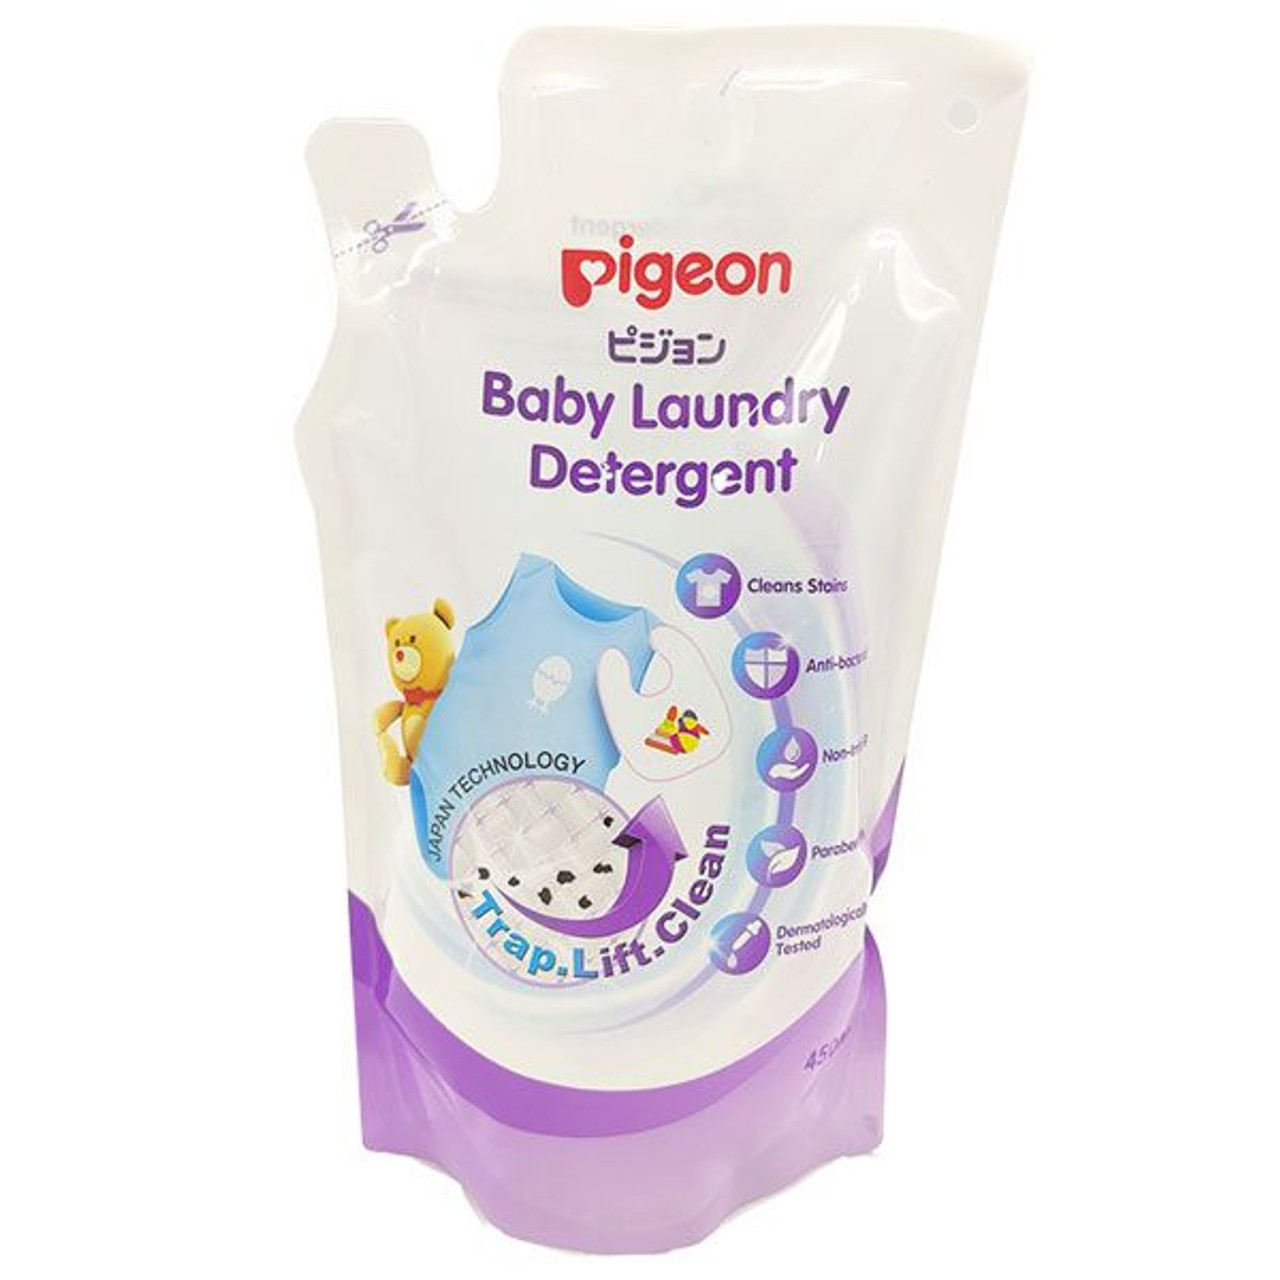 Pigeon Baby Laundry Detergent 450ml Refill at Baby Barn Discounts Pigeon Baby Laundry Detergent washes away dirt, stains and everyday mishaps.